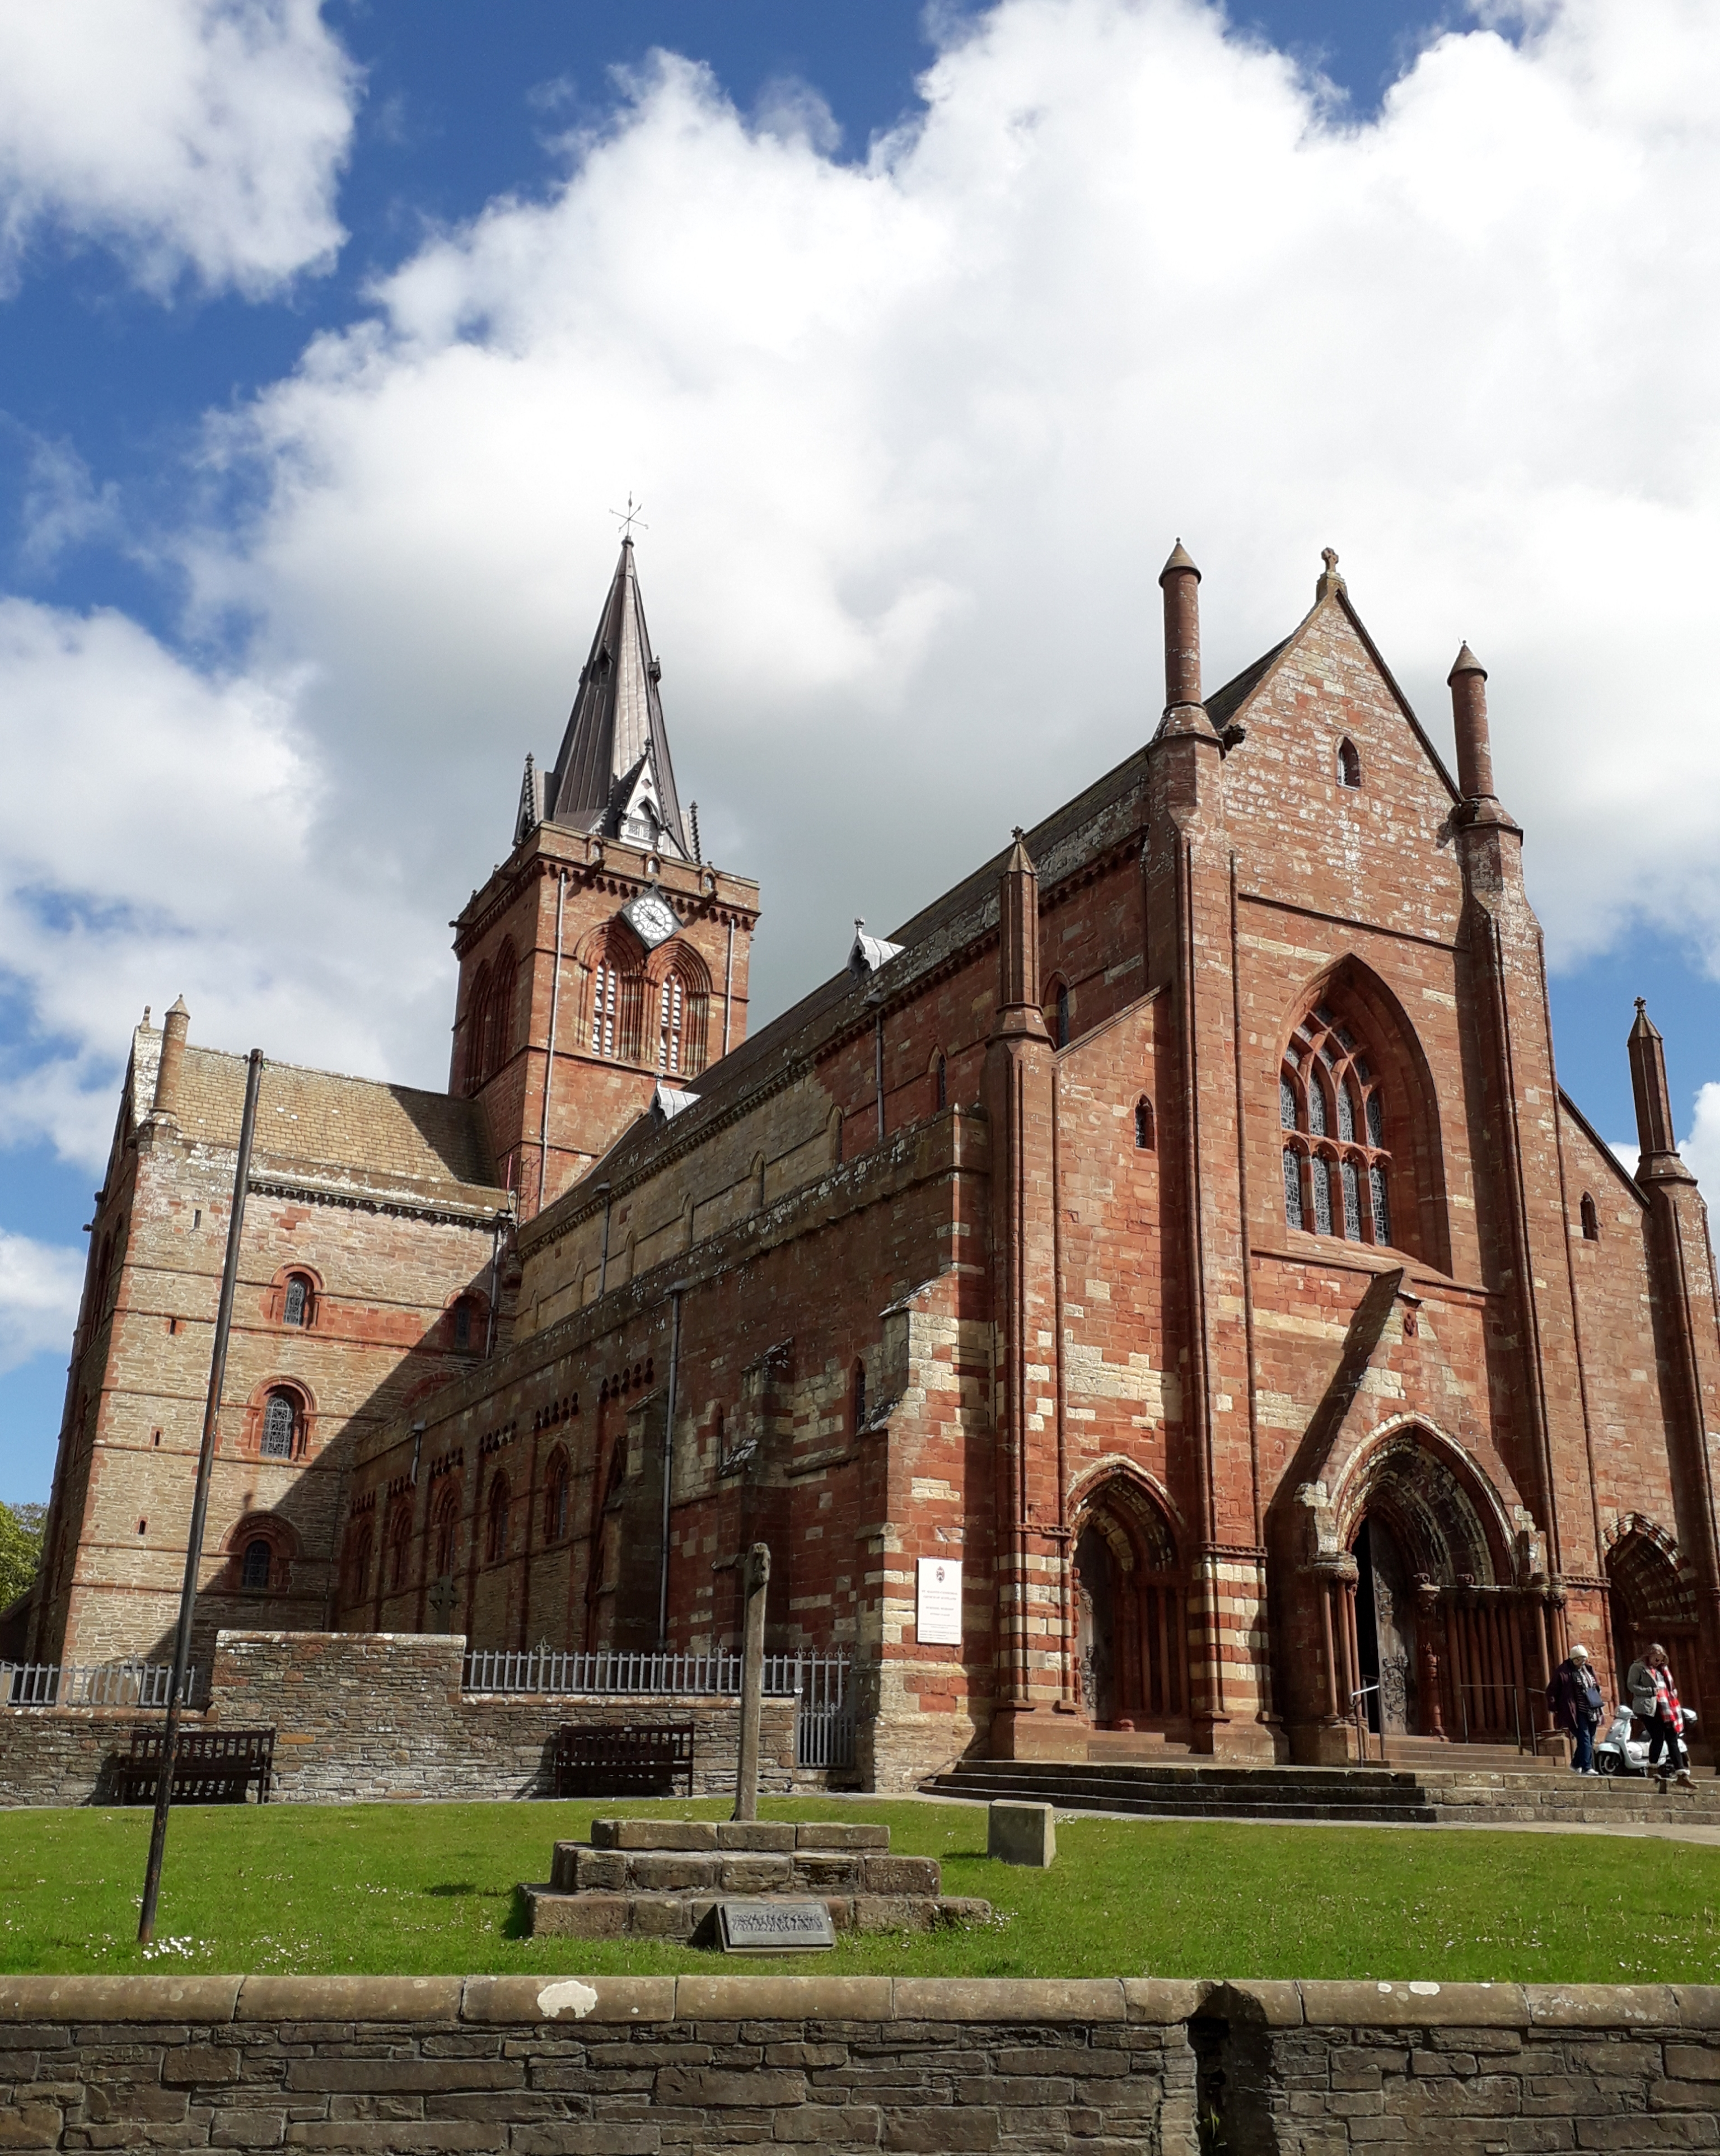 St Magnus Cathedral in Kirkwall, Orkney . Red and blonde sandstone